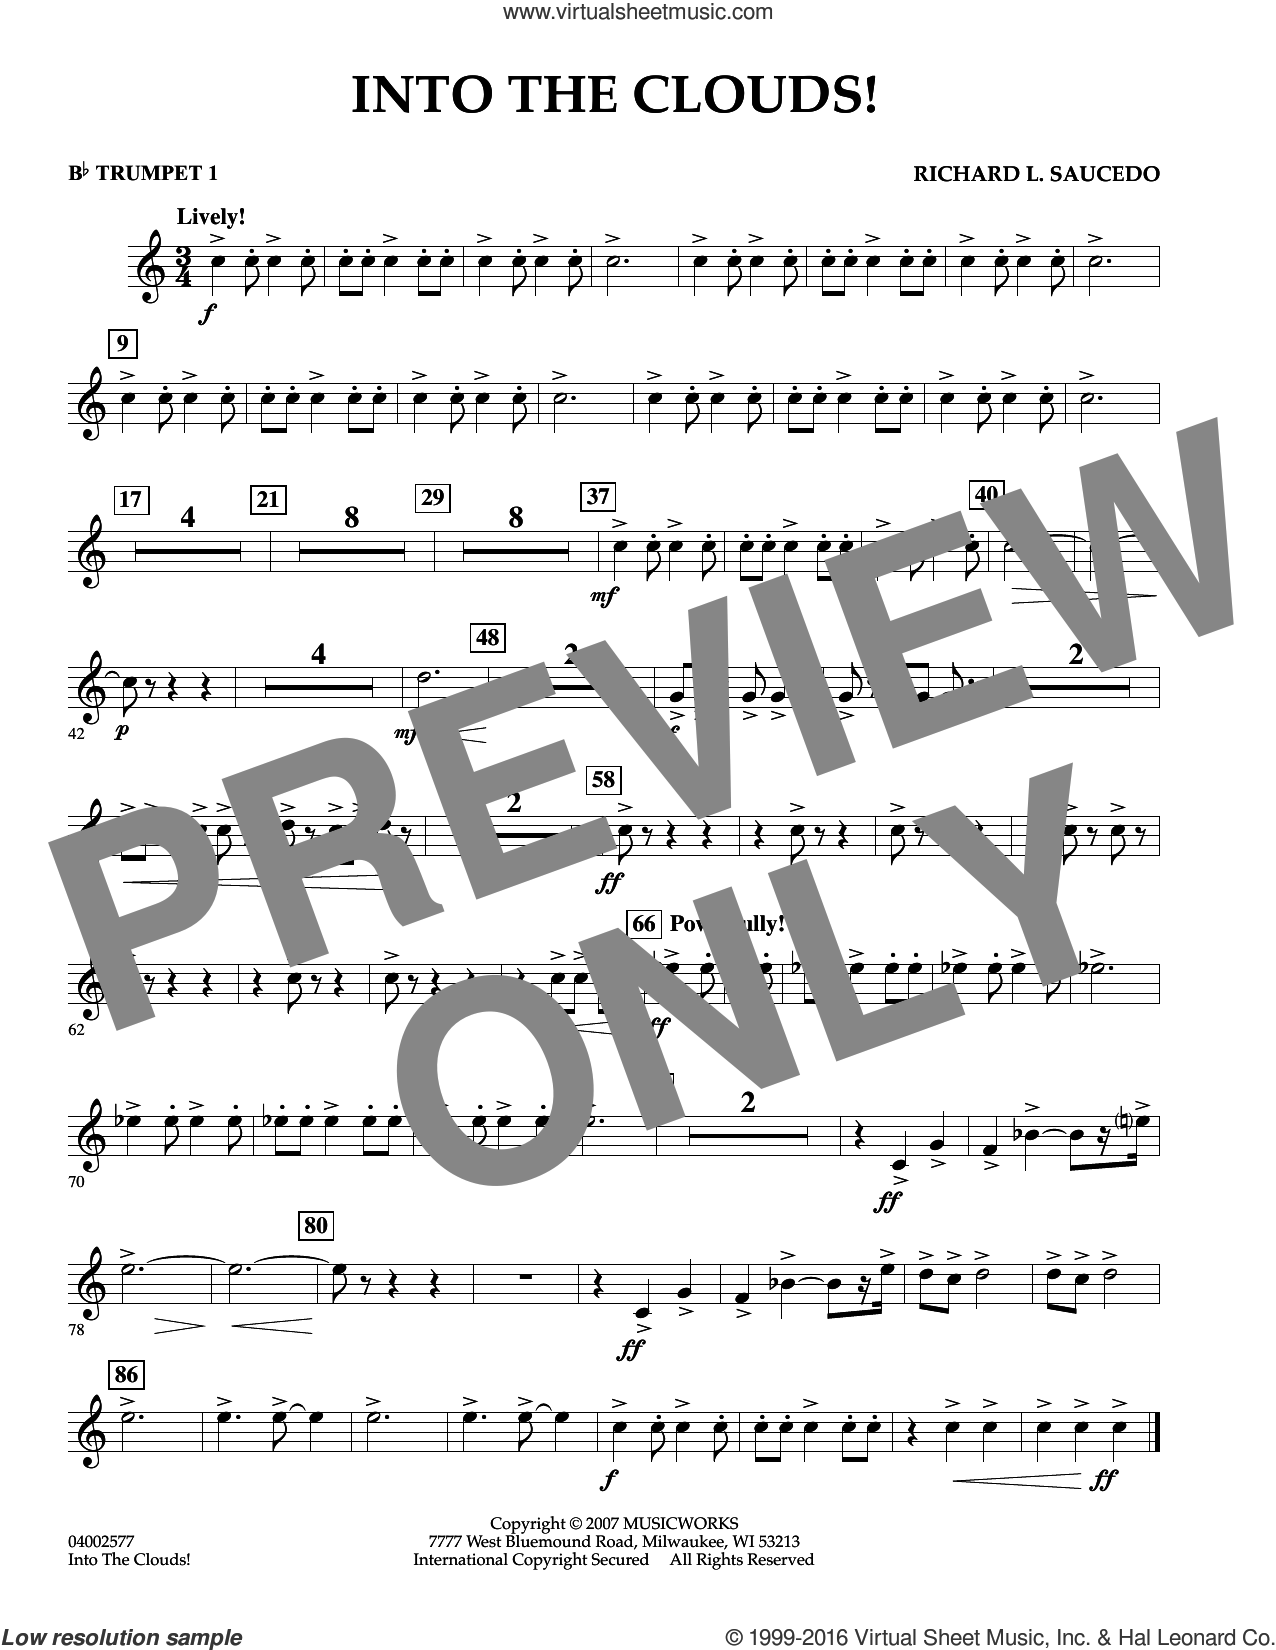 Into The Clouds!  W/cd sheet music for concert band (Bb trumpet 1) by Richard L. Saucedo, intermediate skill level